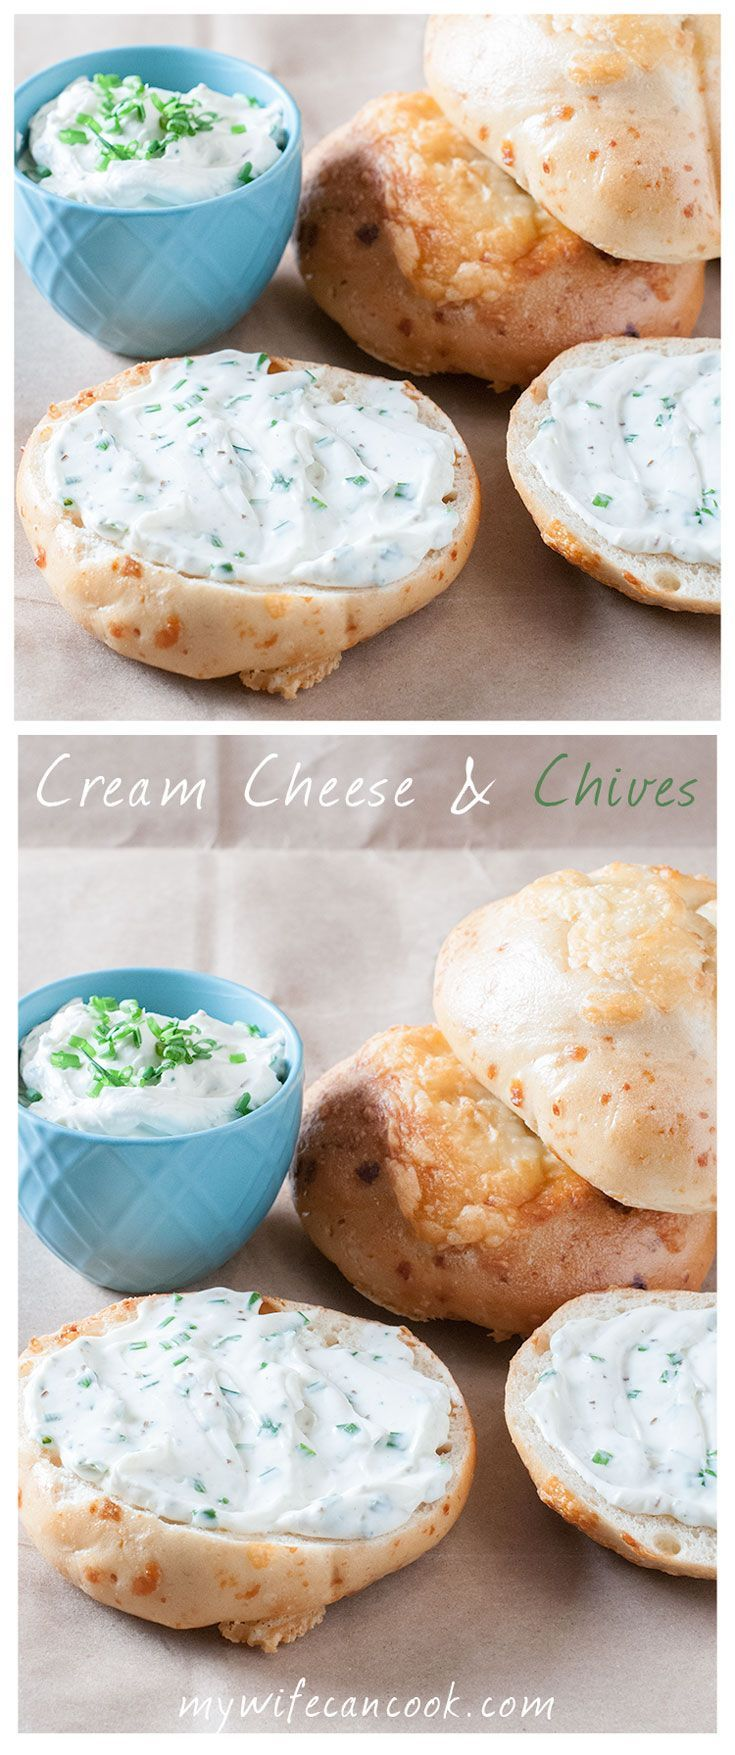 Cream Cheese and Chives have become a tradition in our house. This Chive Cream Cheese Dip is perfect for dipping vegetables or it makes a great spread to go on crackers or you favorite bagel. You'll find a lot of flavored cream cheeses and dips that feature cream cheese, but you'll be hard pressed to find a dip or spread that's easier to put together than this! It's cream cheese plus 3 other ingredients. You mix them together and that's it! No baking, no fuss, just great flav